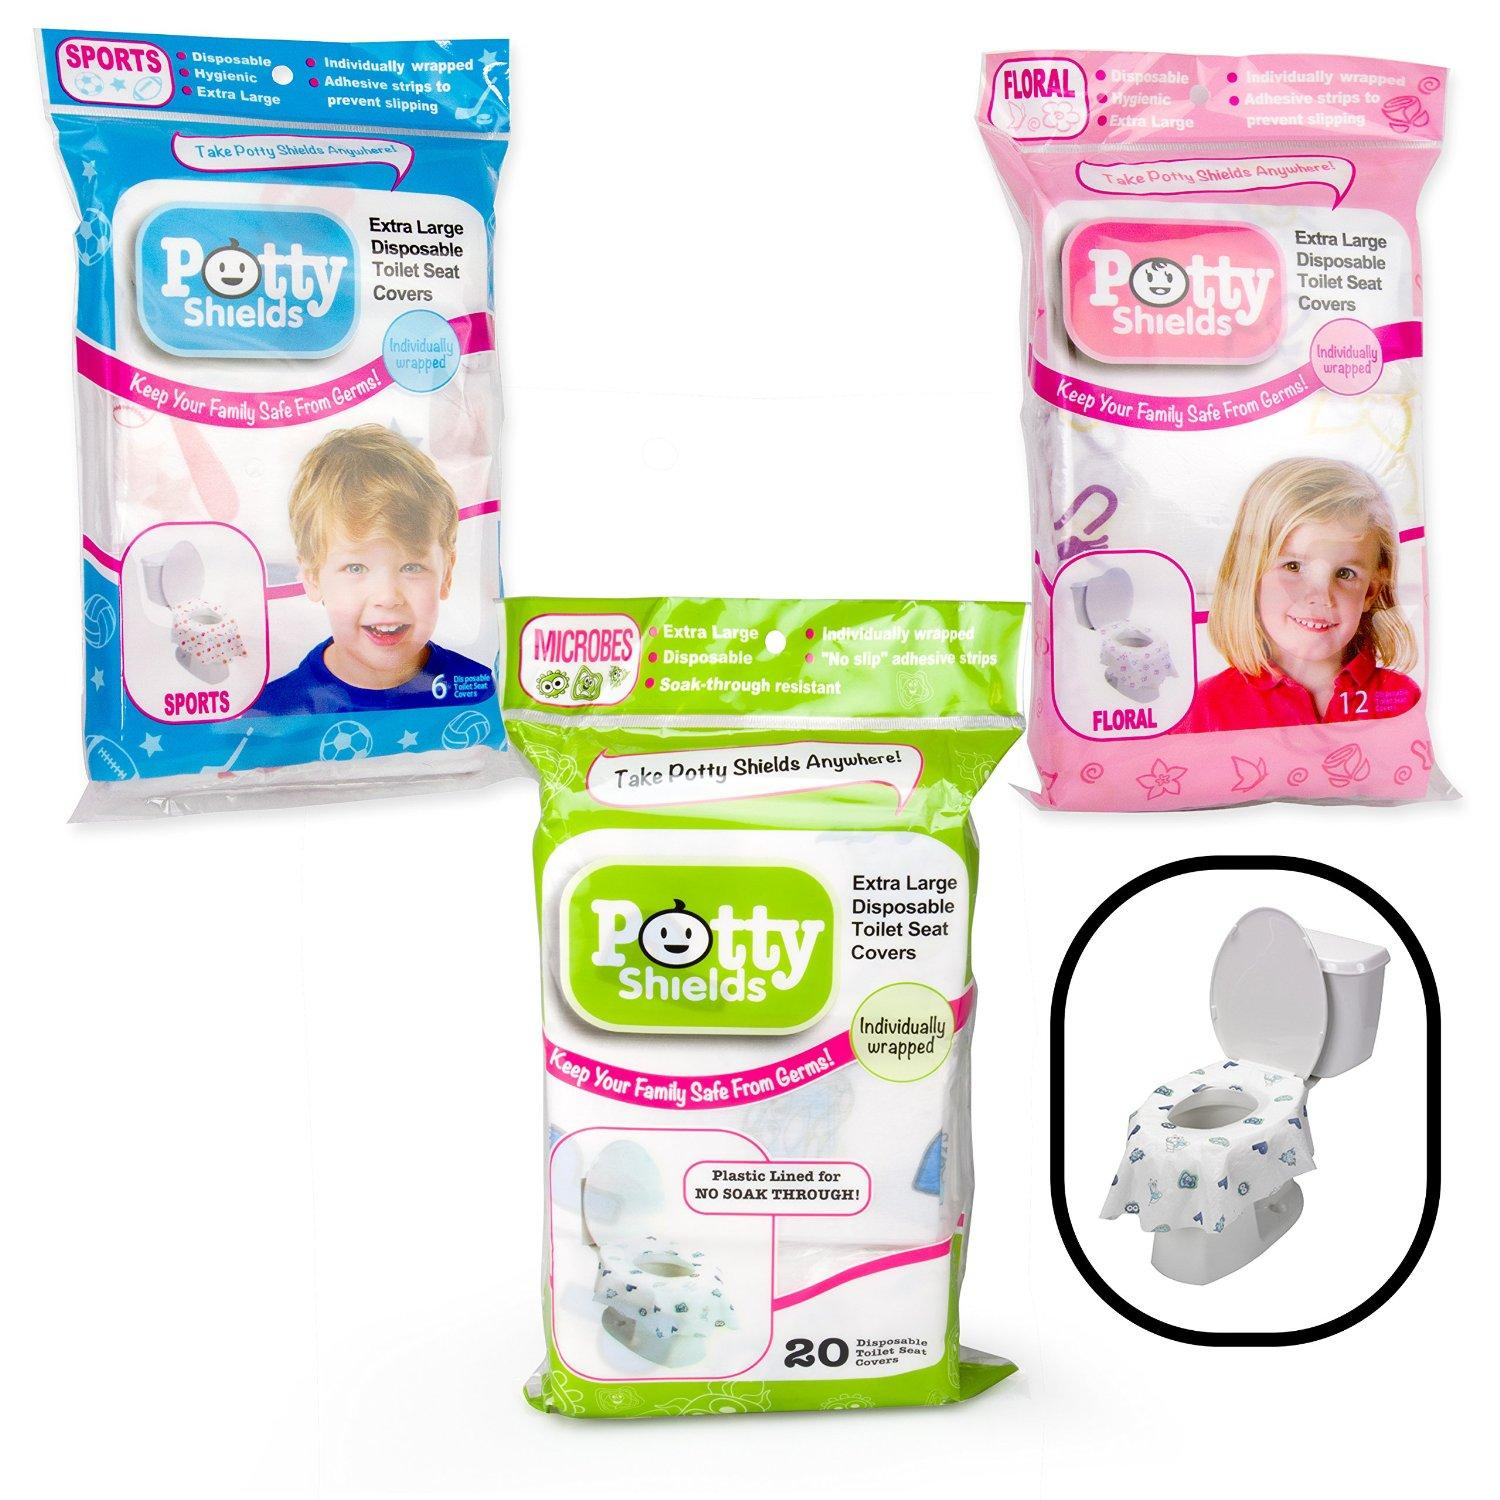 Toilet Seat Covers- Disposable XL Potty Seat Covers, Individually Wrapped by Potty Shields